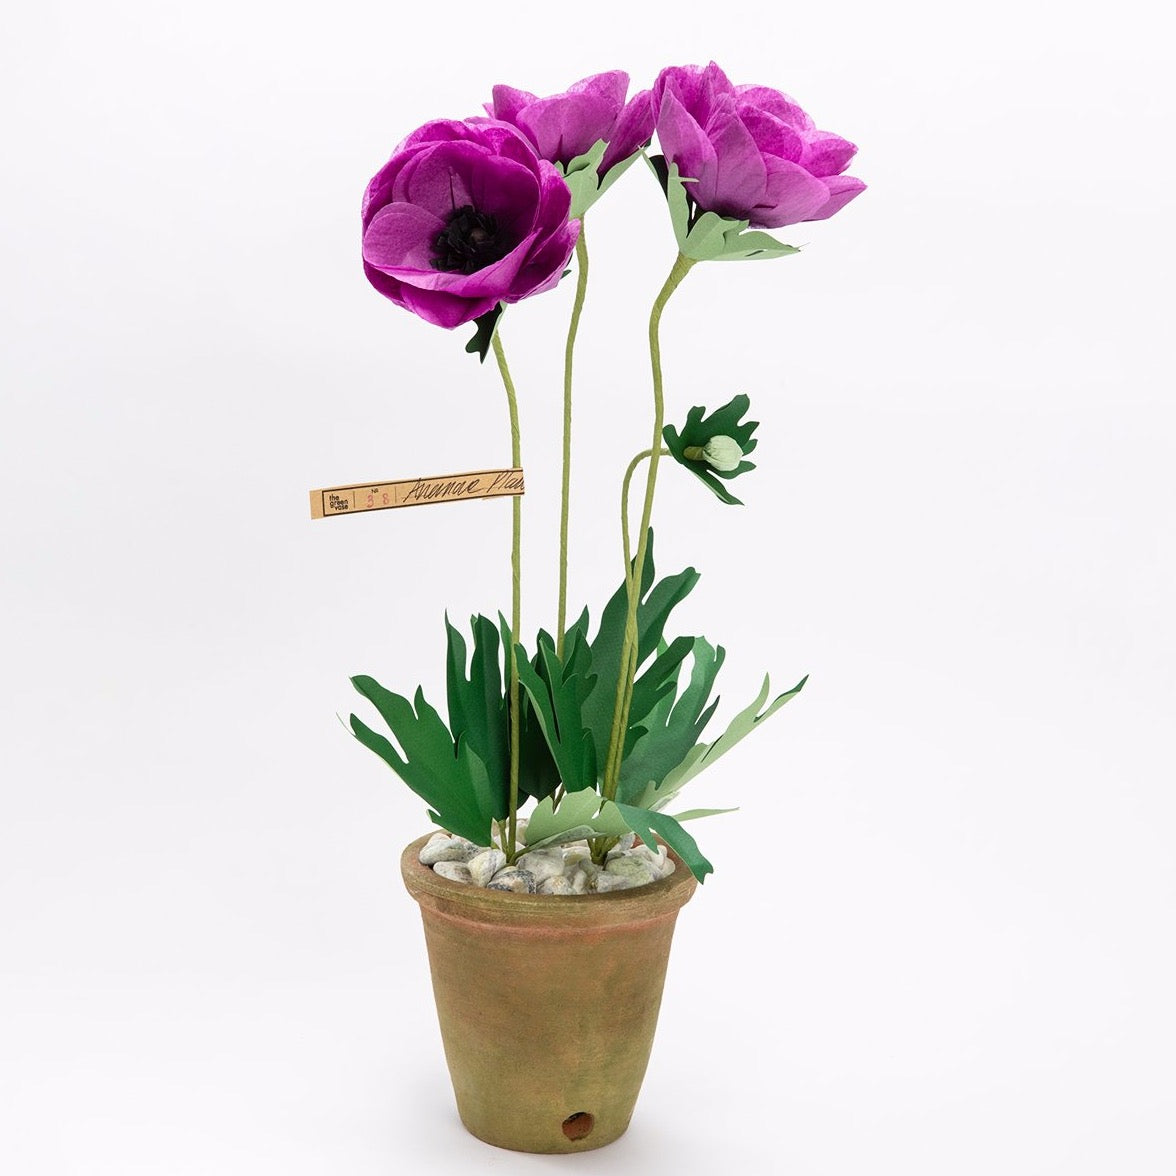 The Green Vase potted purple anemone